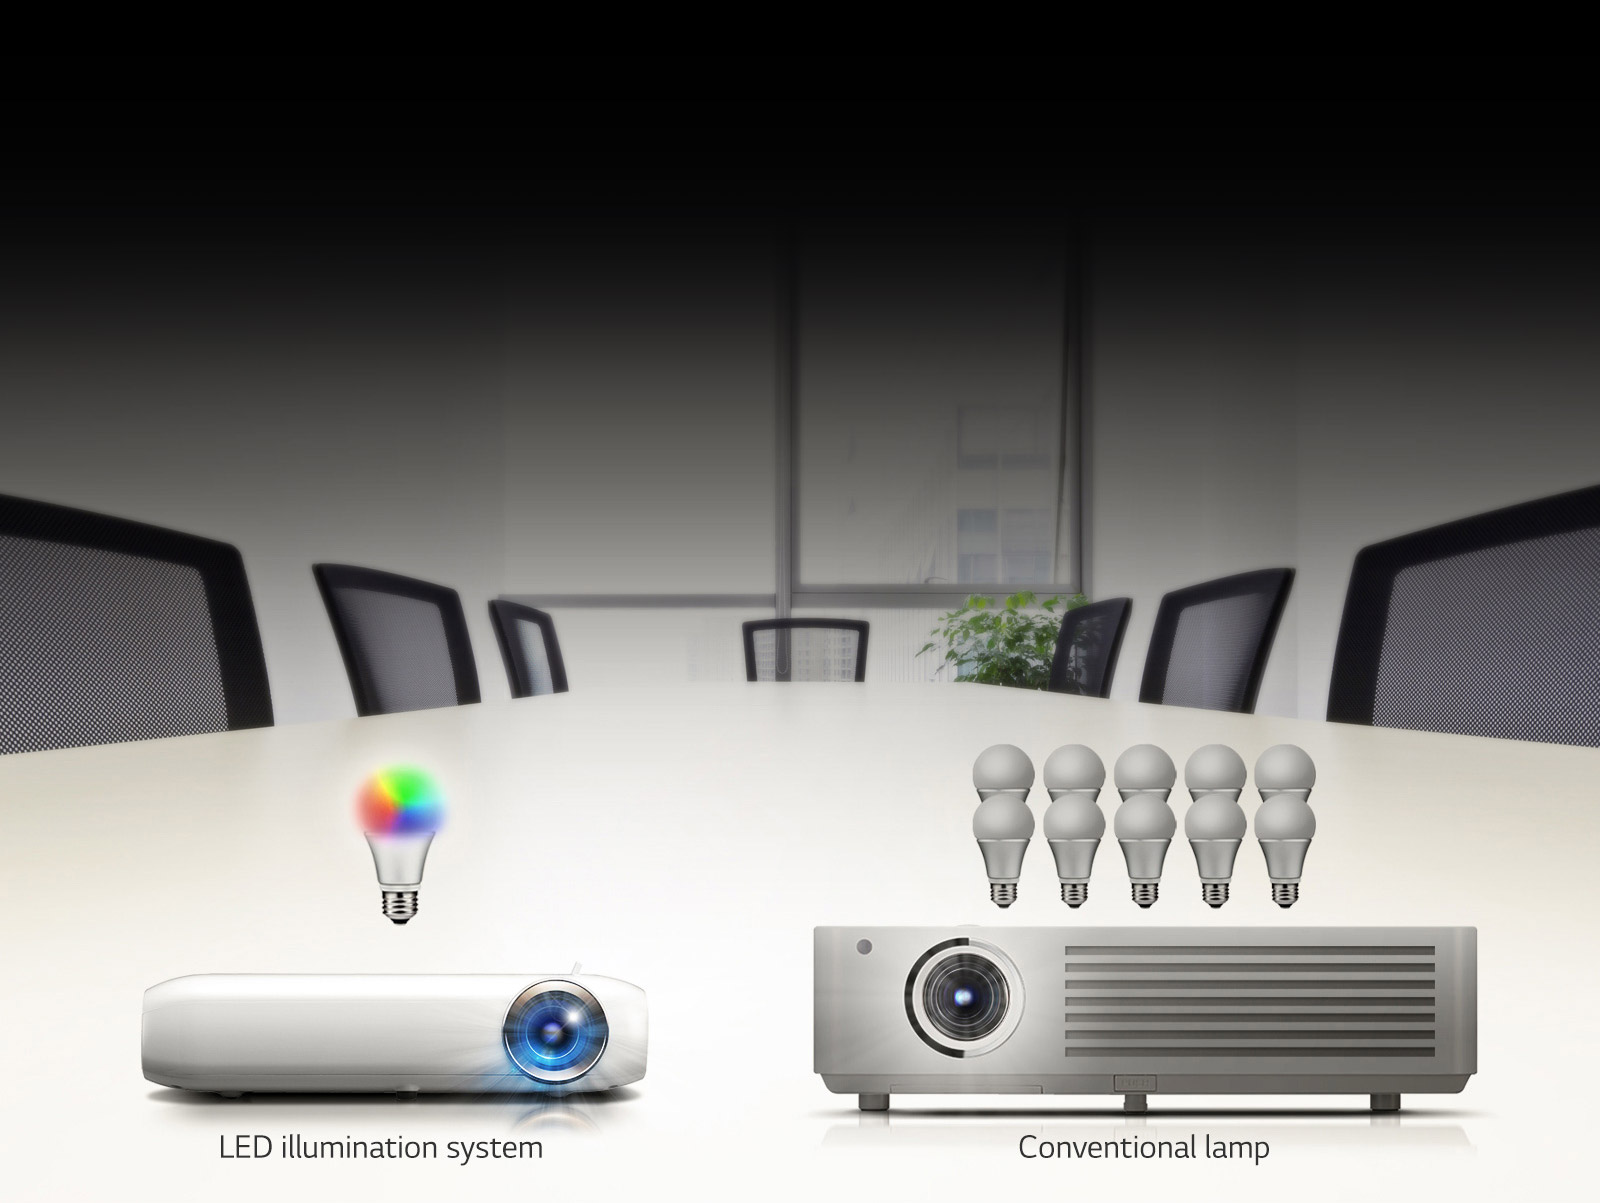 AE_projectors_about-lg-projectors_feature_01_1478752417750